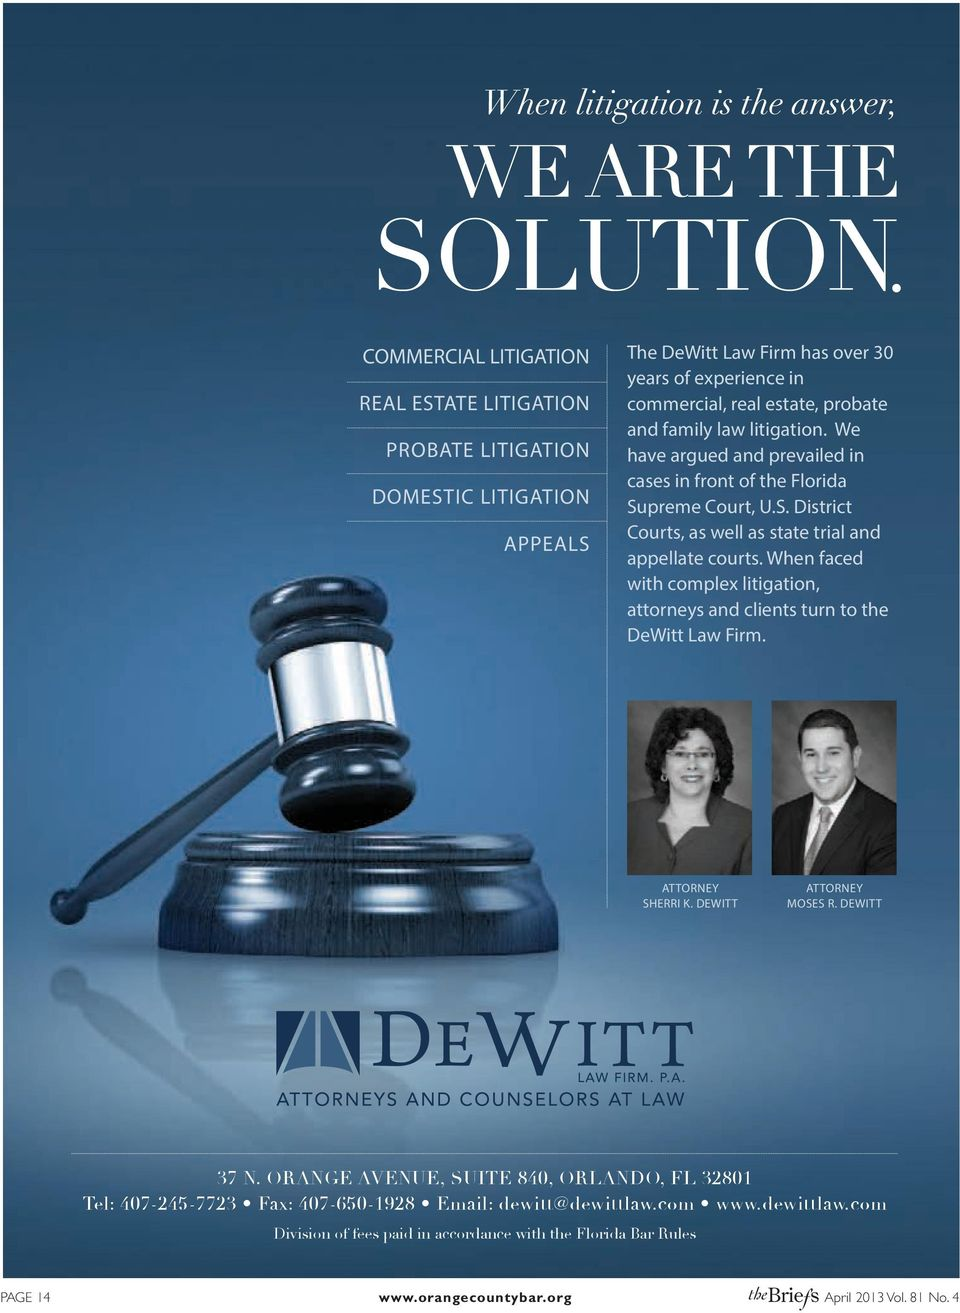 When faced with complex litigation, attorneys and clients turn to the DeWitt Law Firm. ATTORNEY SHERRI K. DEWITT ATTORNEY MOSES R. DEWITT 37 N.